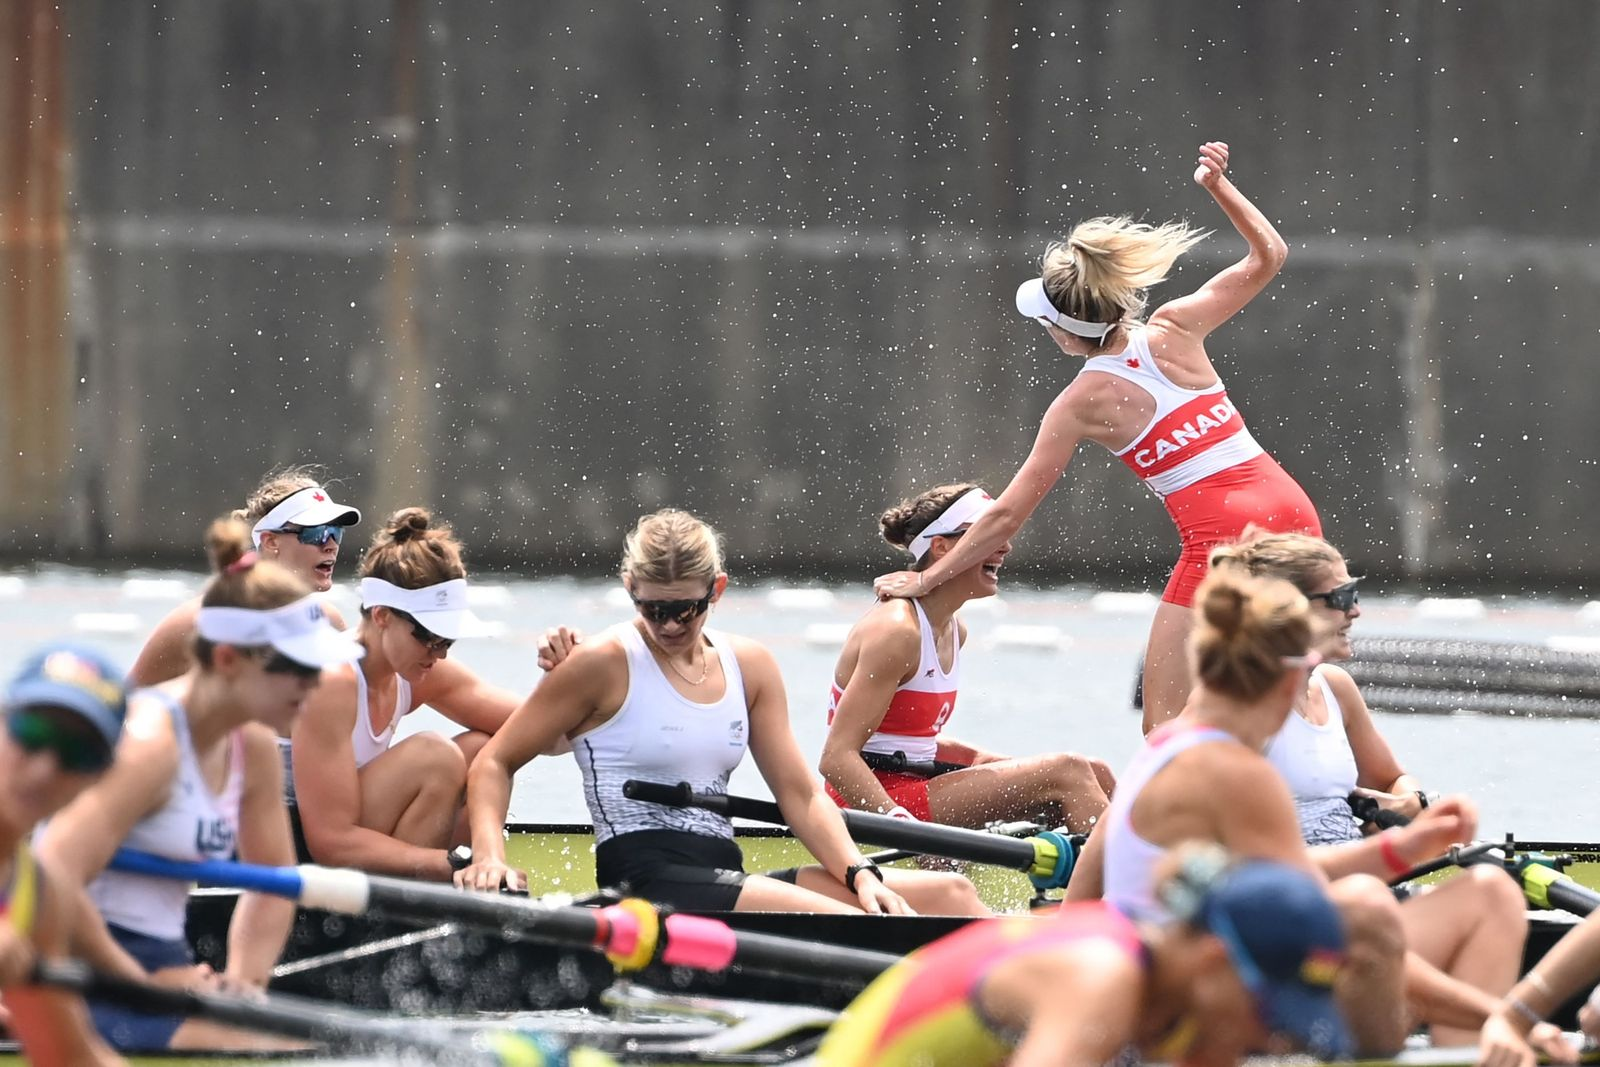 ROWING-OLY-2020-2021-TOKYO